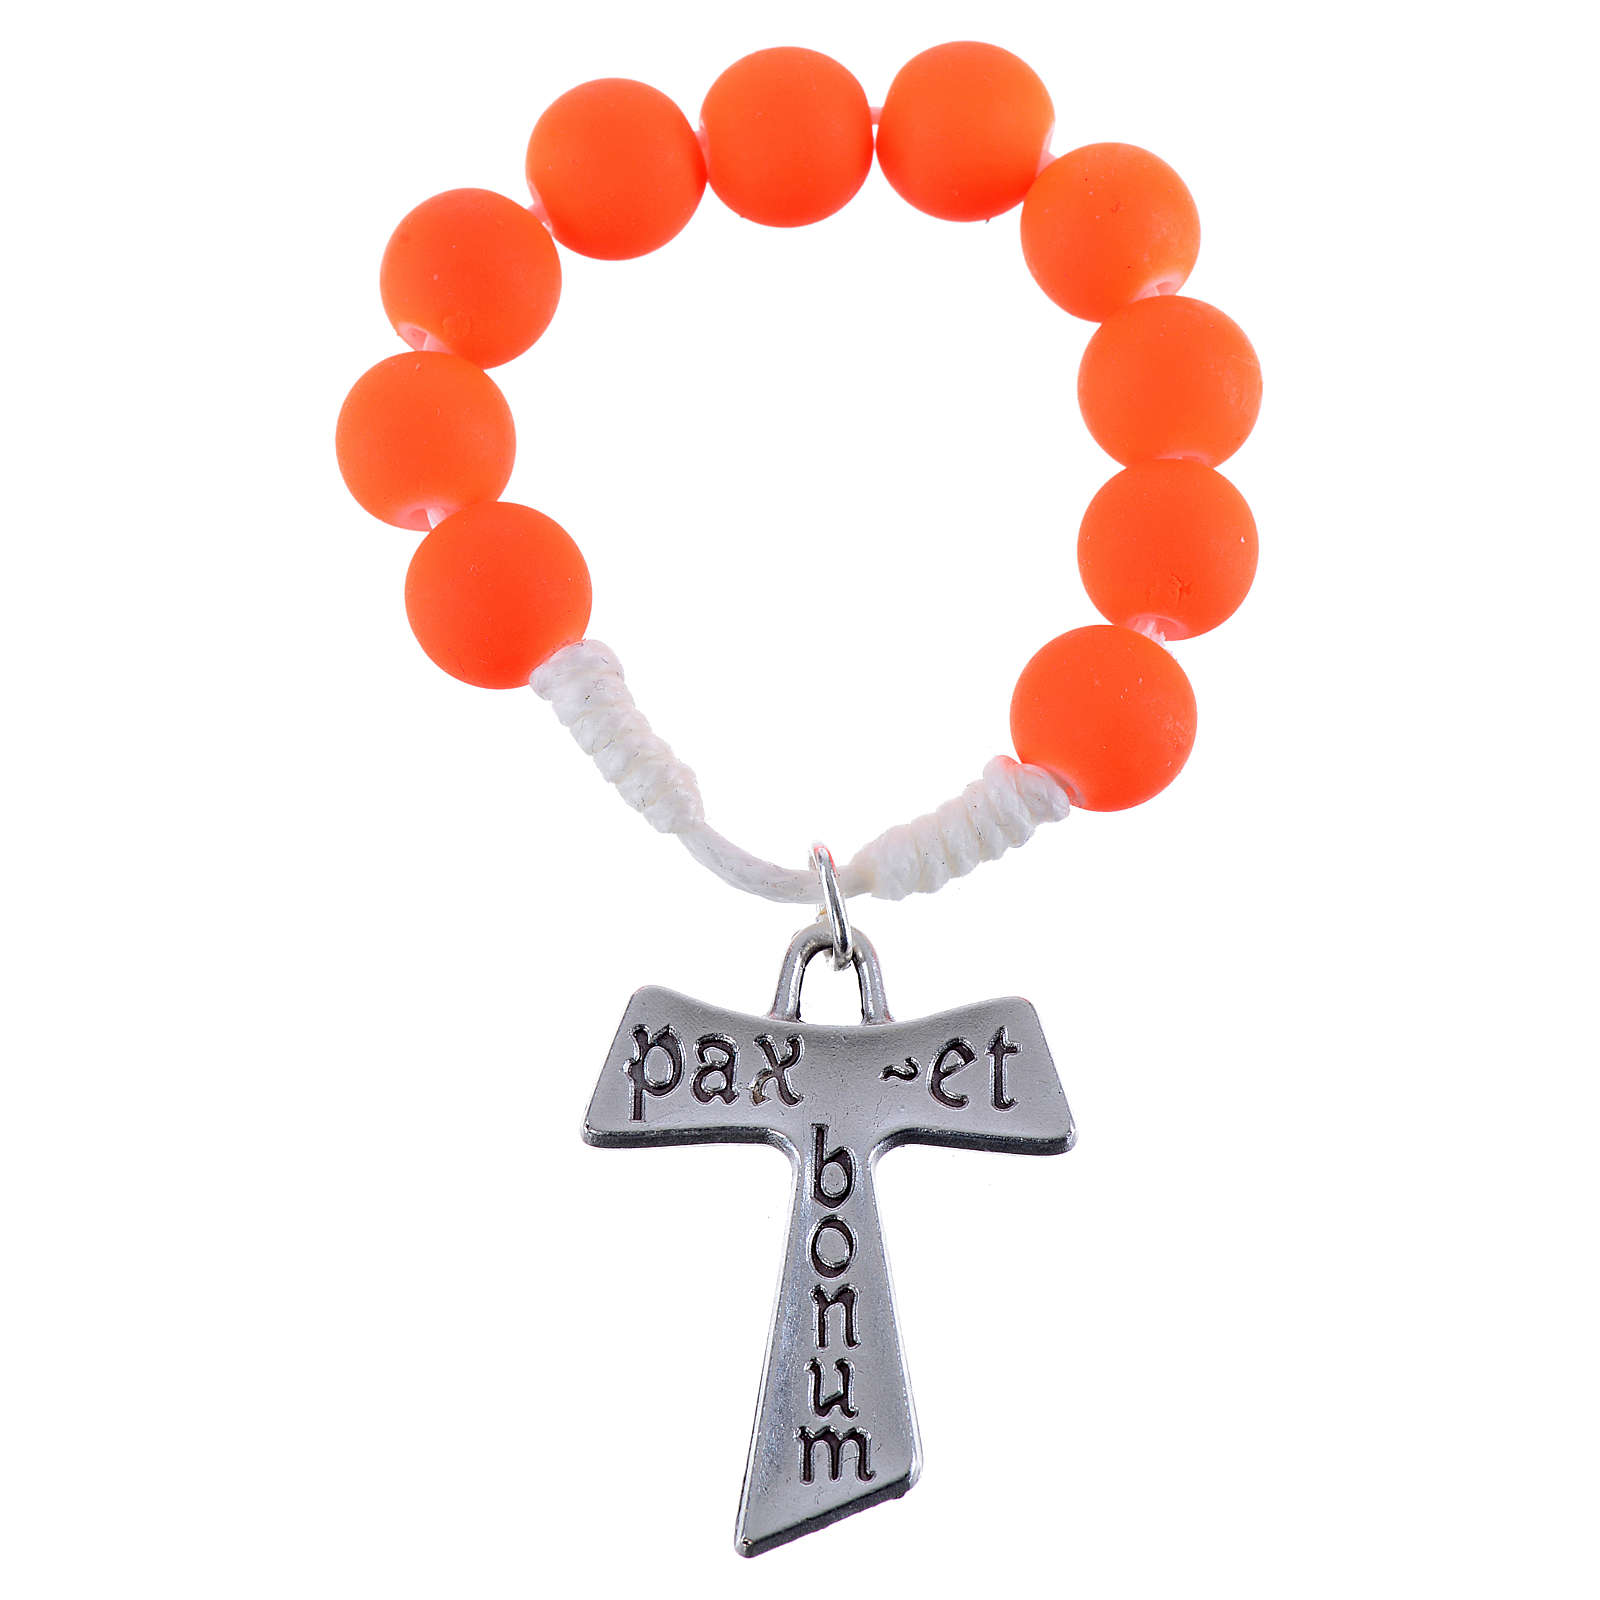 Single decade rosary beads in orange fimo, with Tau 4